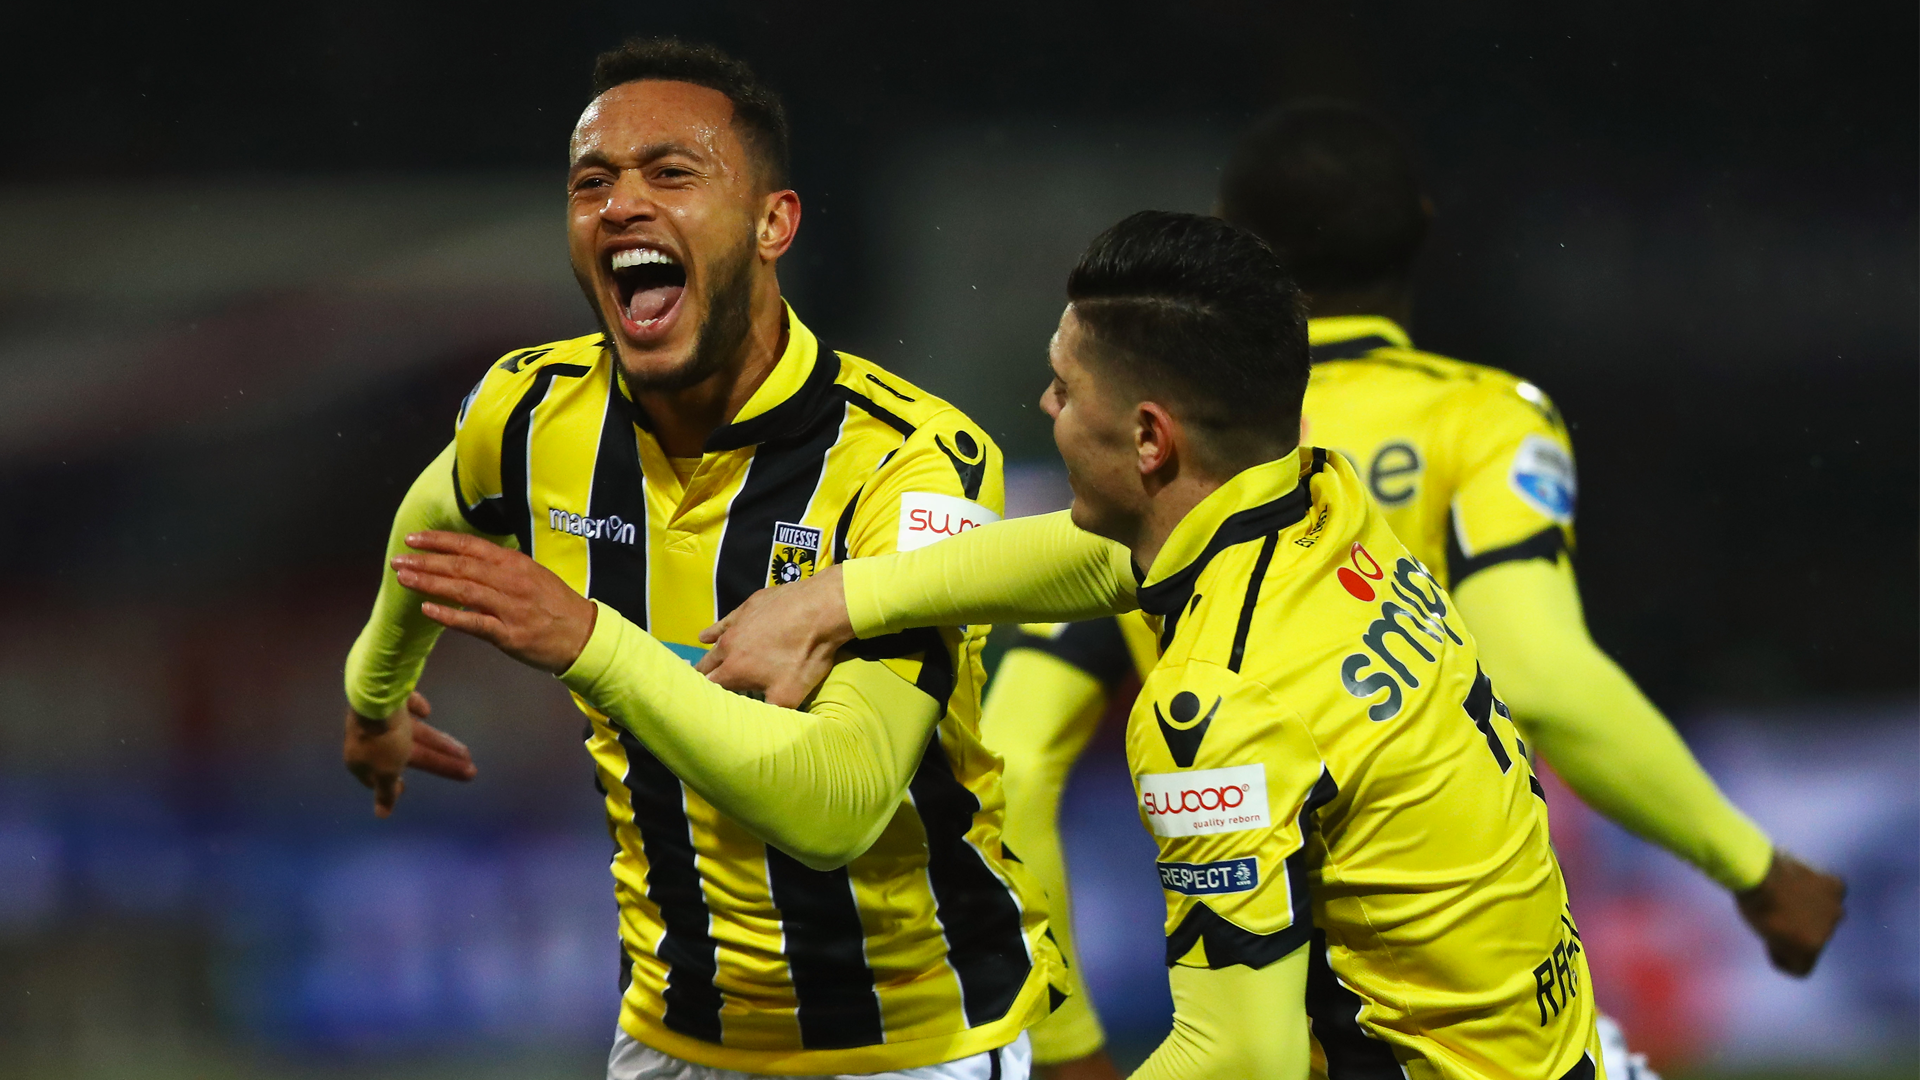 Chelsea's Lewis Baker closing in on Championship loan move